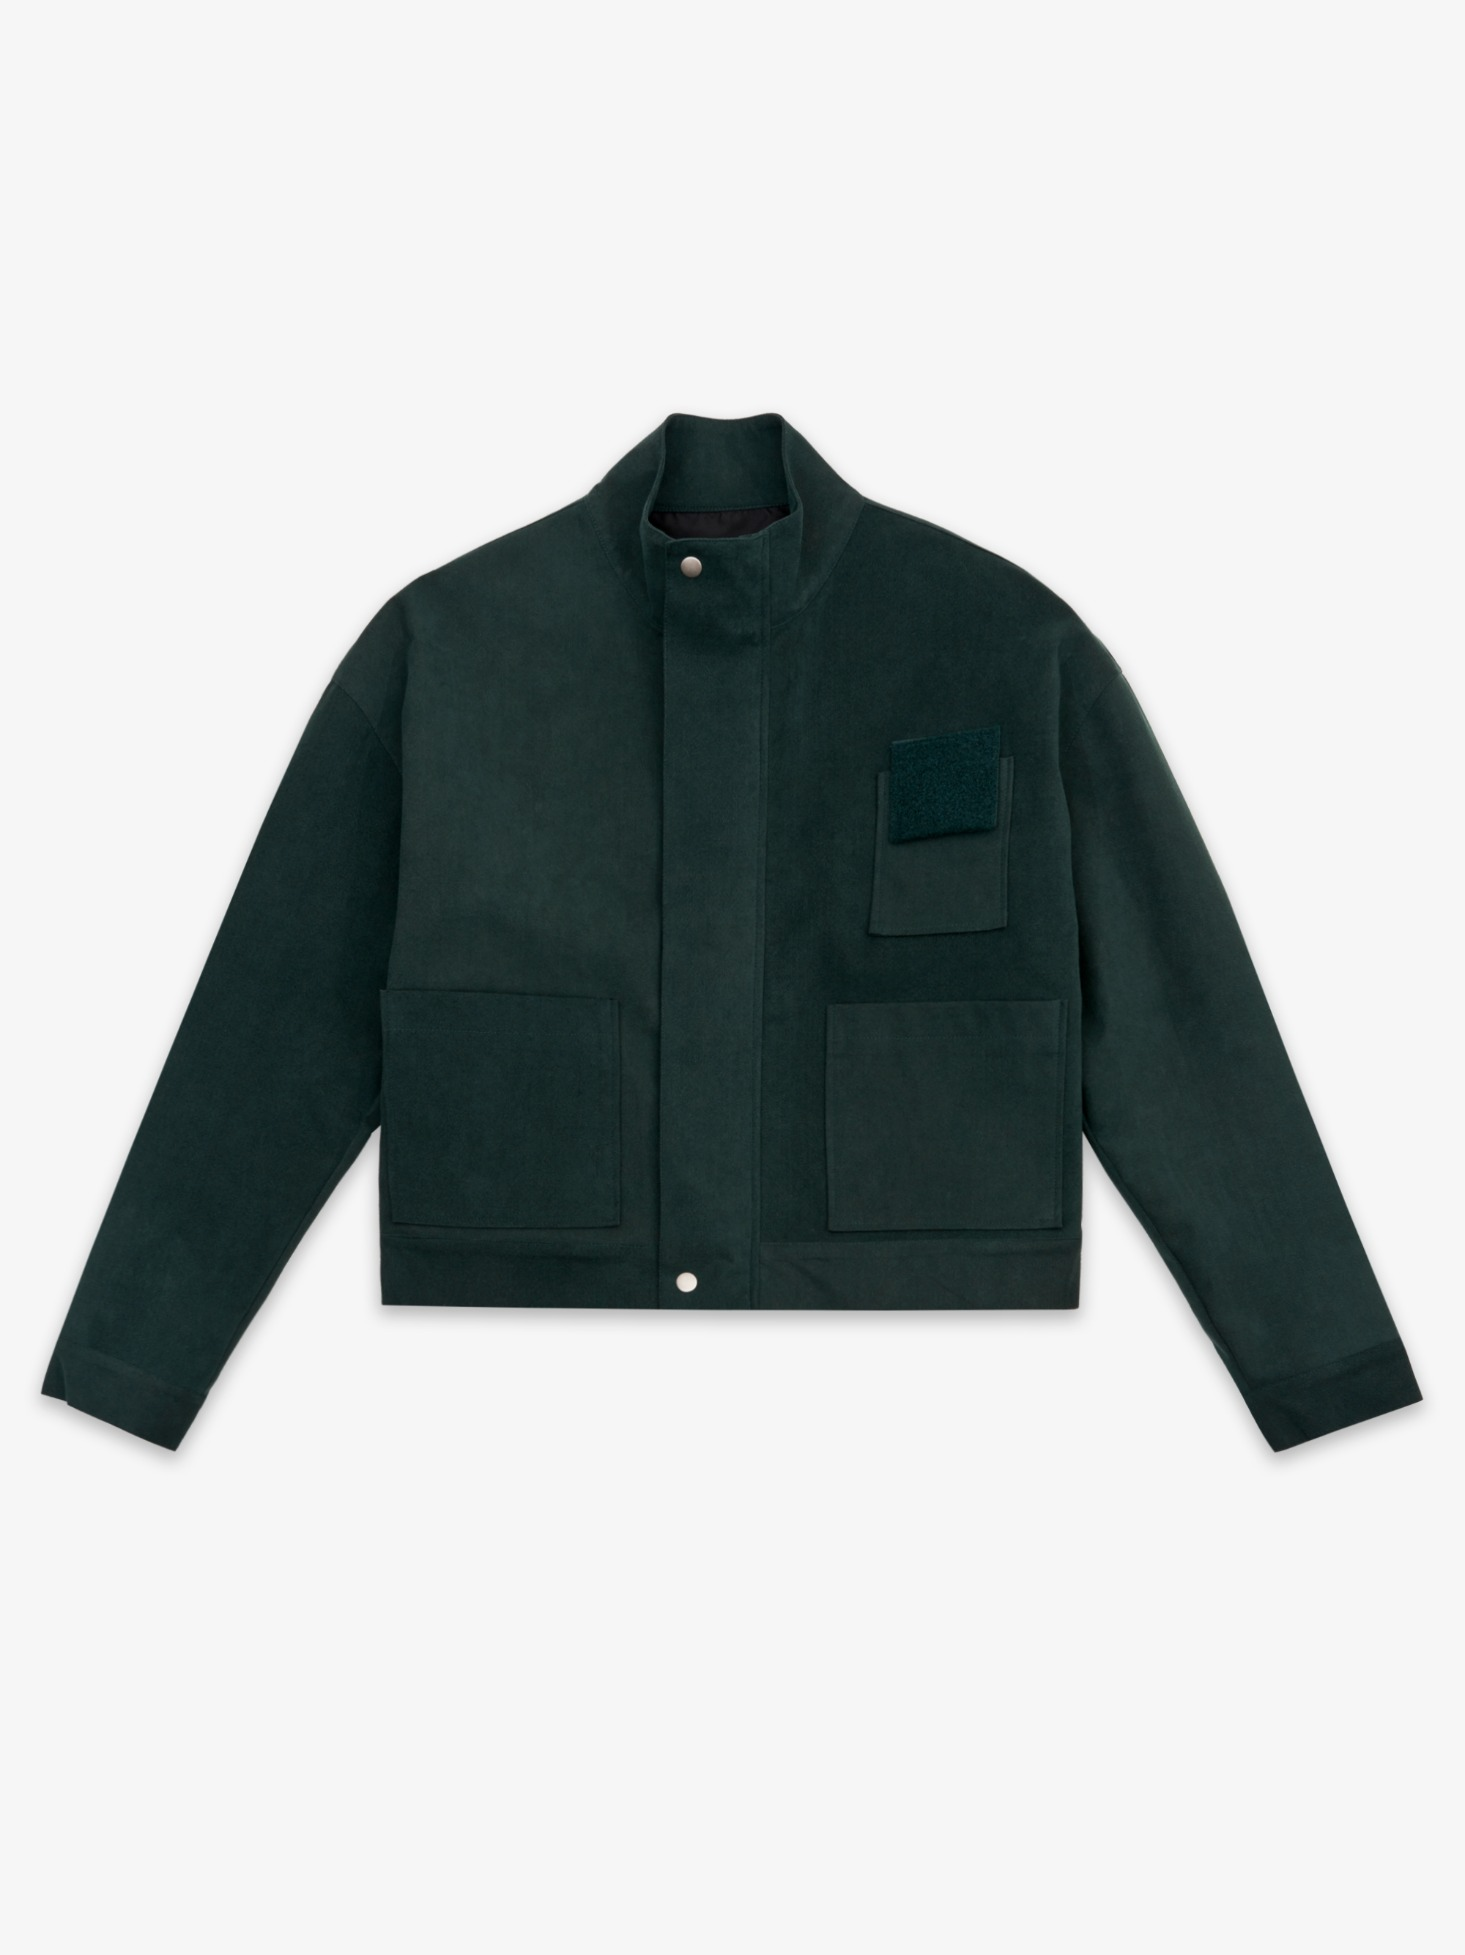 FYUCHR MOBILE JACKET(DEEP GREEN) 시즌오프 50% 특별할인 248,000원->